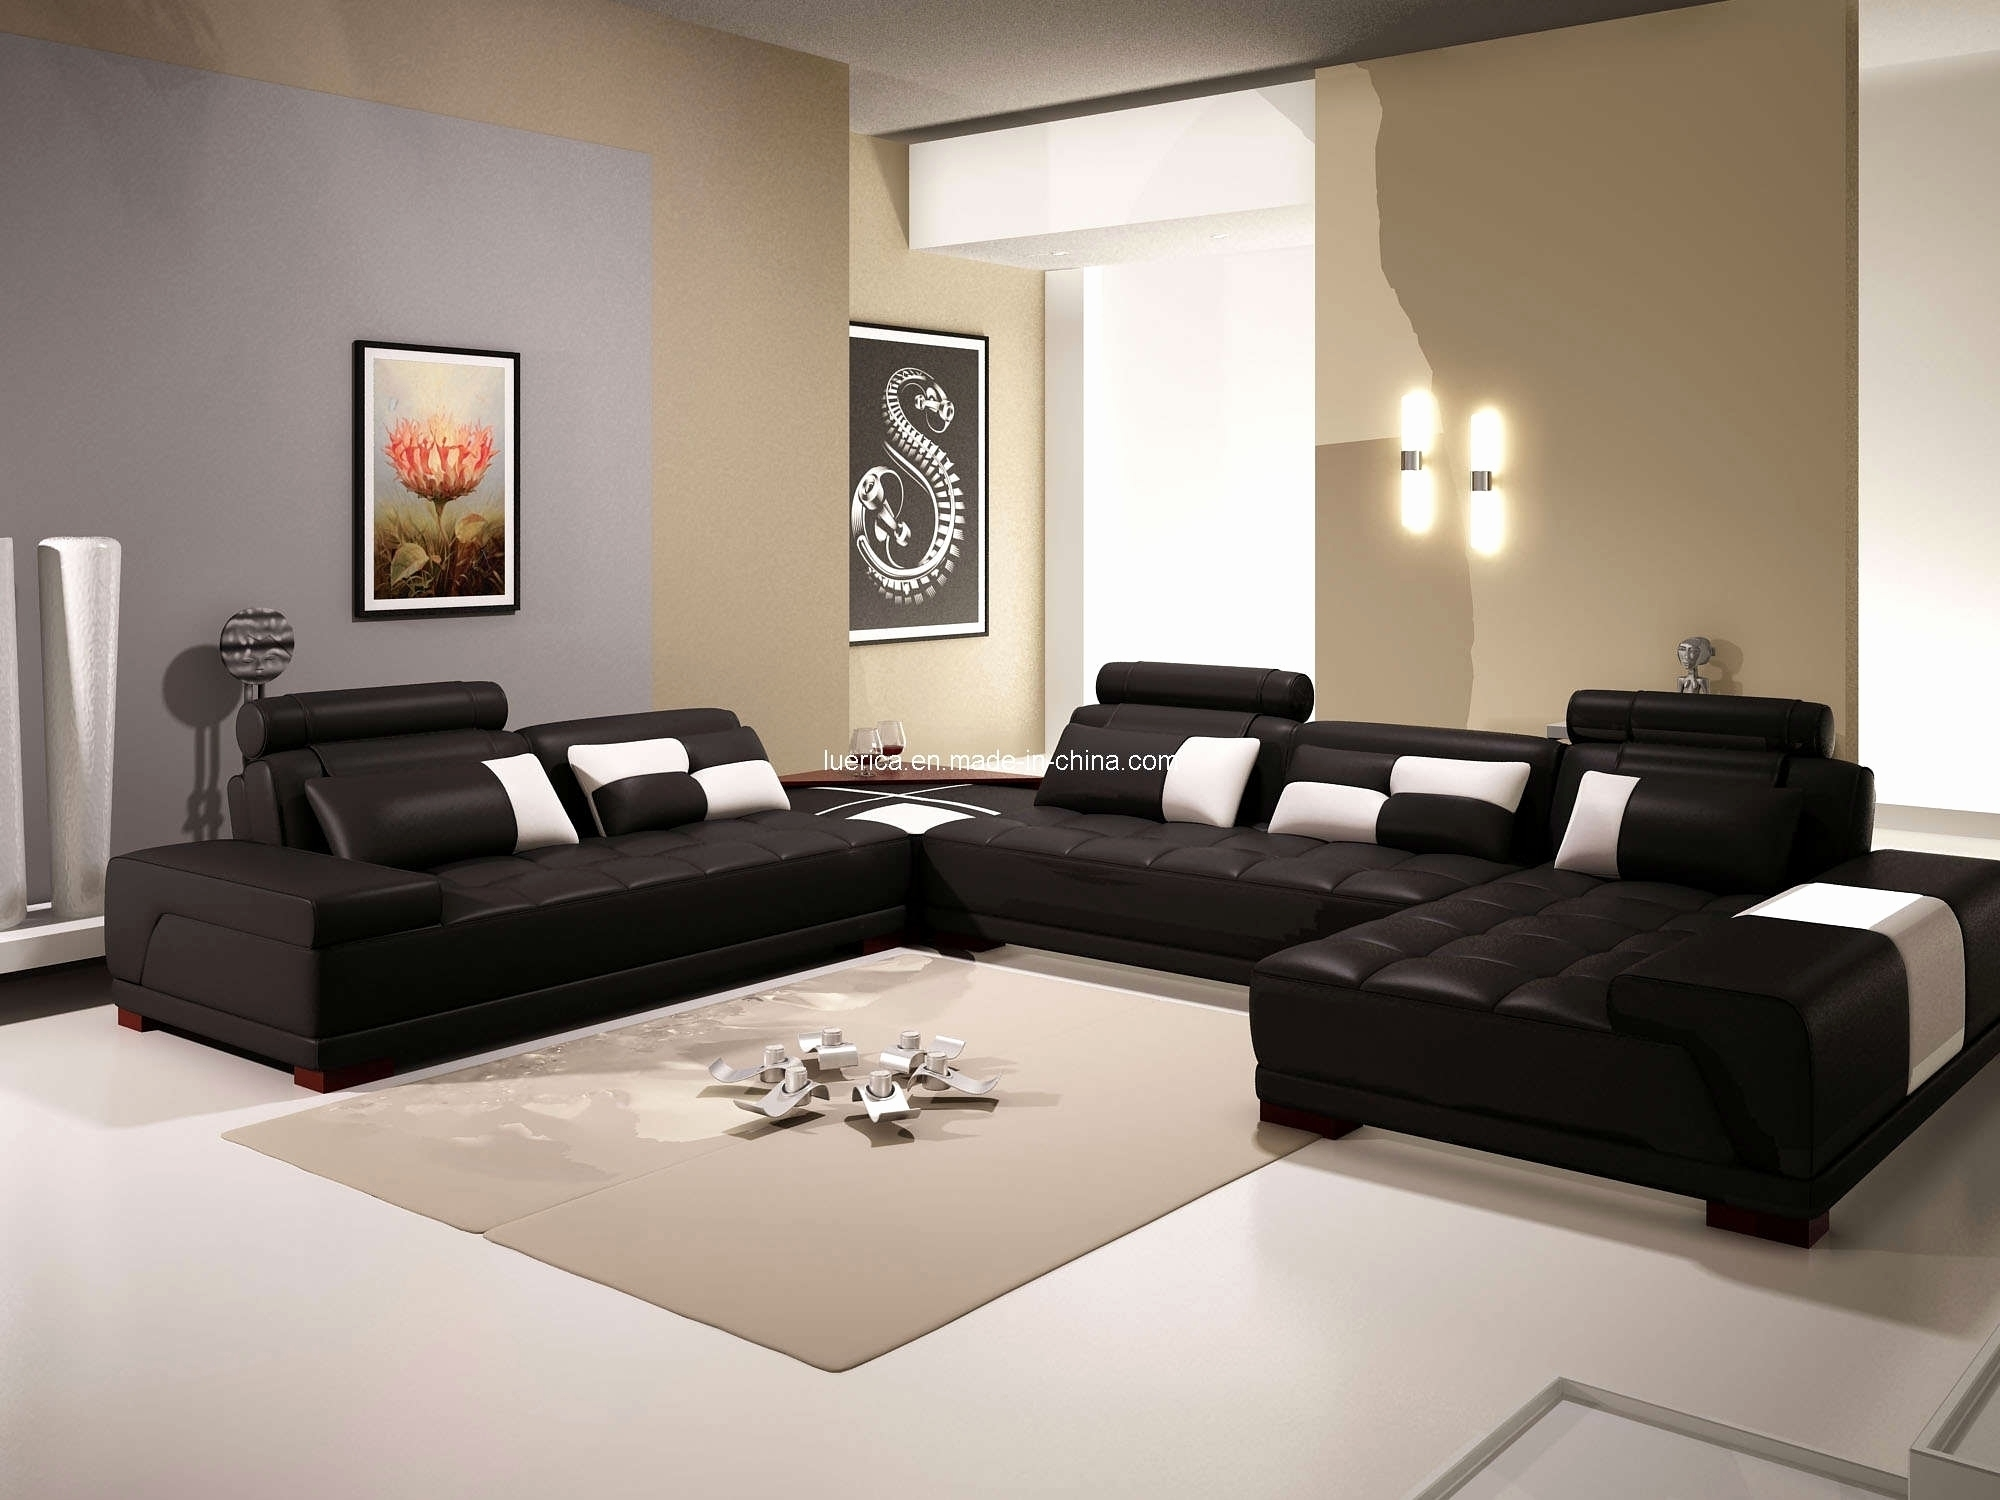 Elegant Leather U Sectional 2018 – Couches And Sofas Ideas in Deep U Shaped Sectionals (Image 6 of 15)